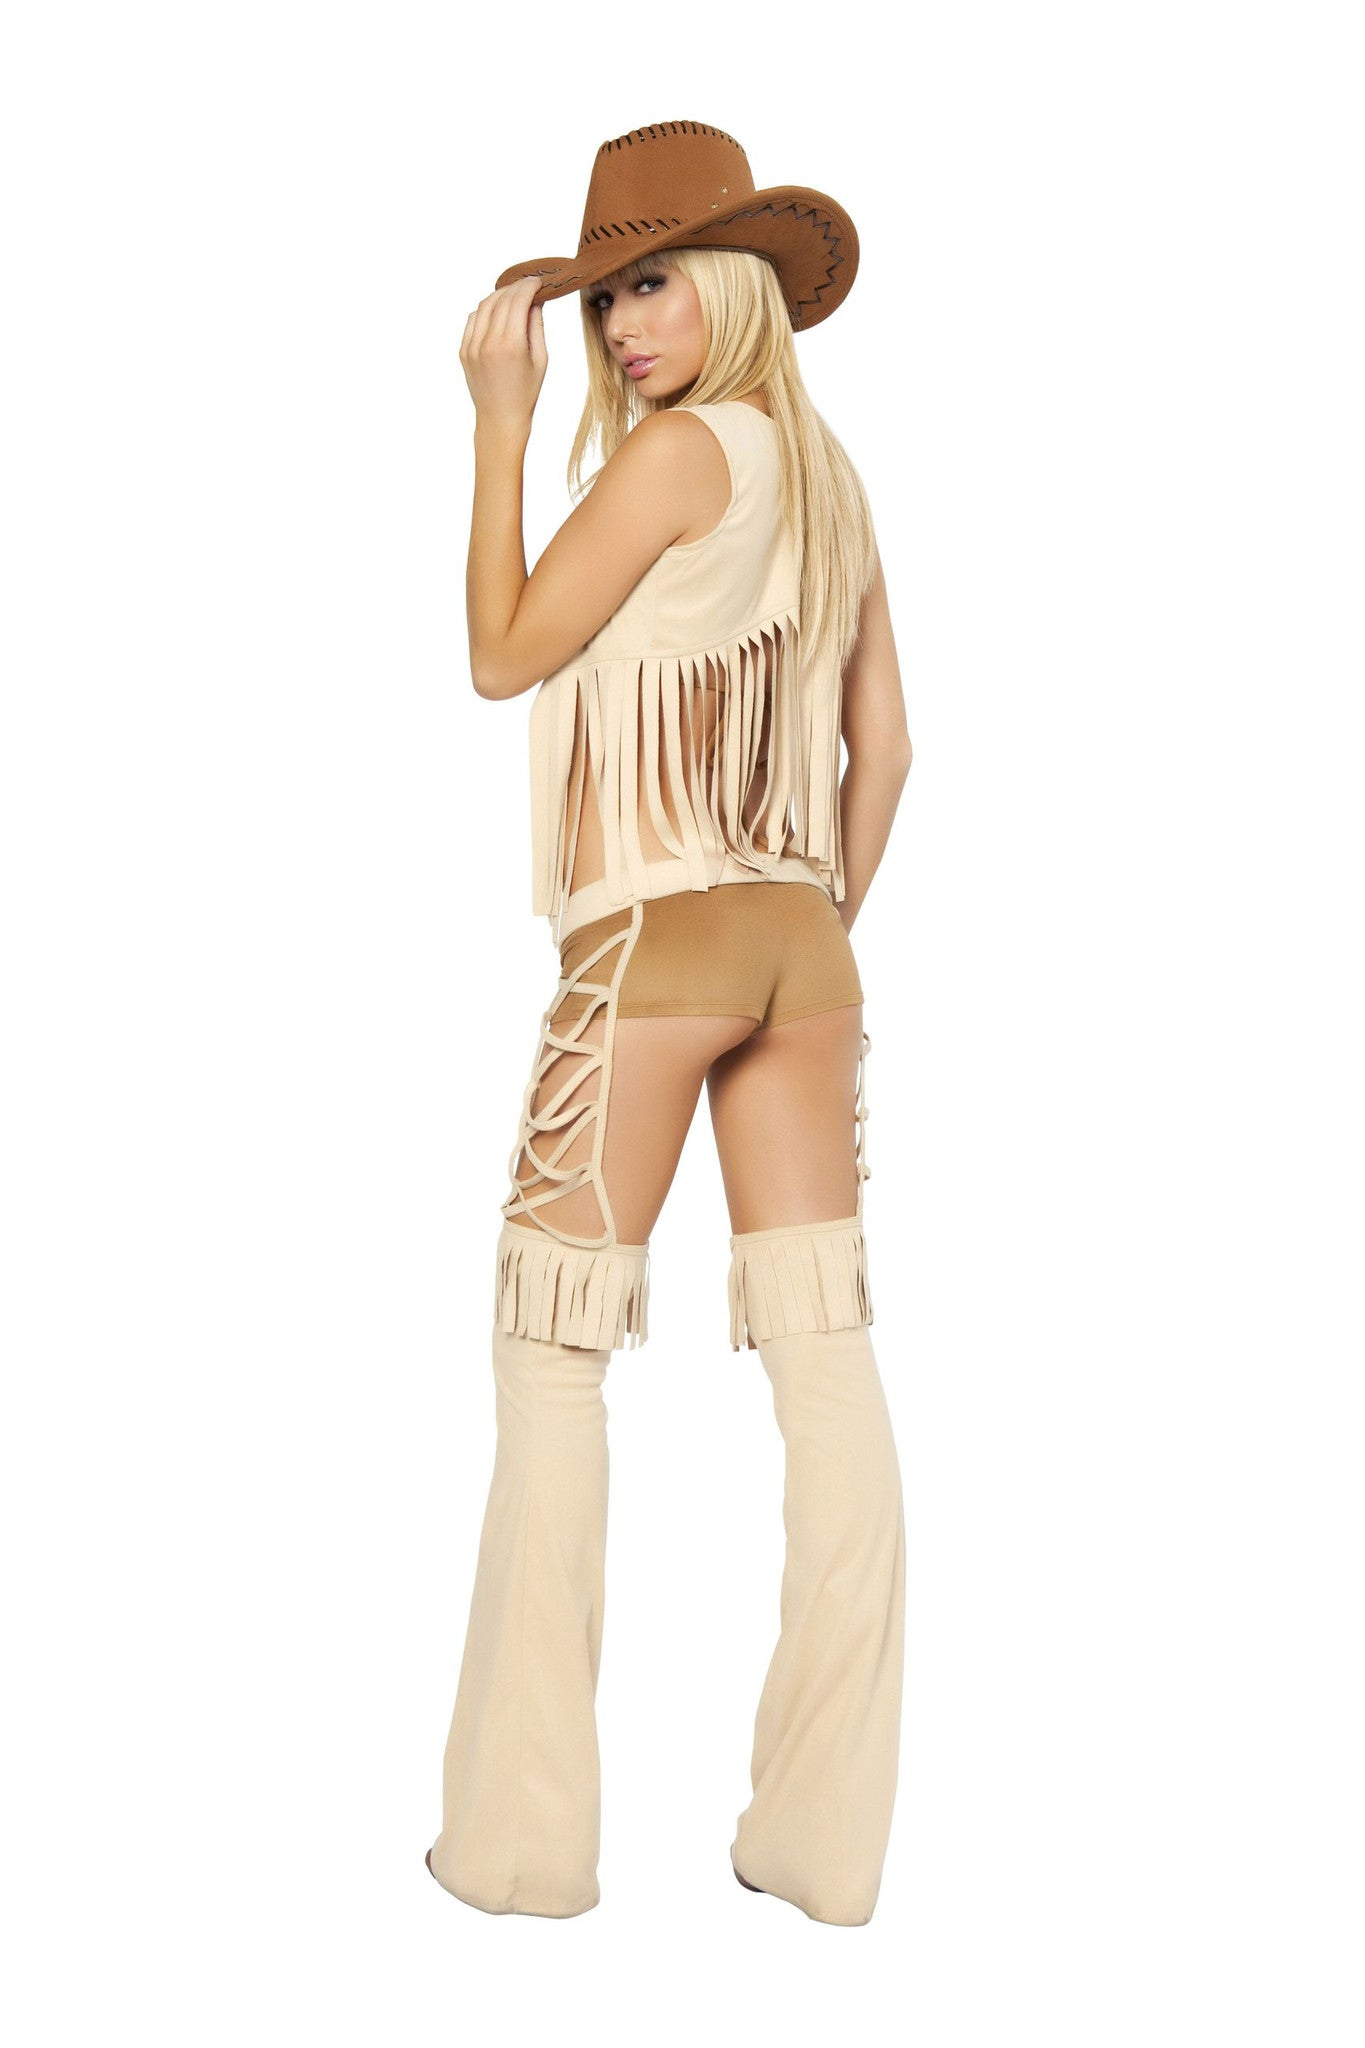 4295 - 5pc Easy Rider ${description} | Roma Costume and Roma Confidential wholesale manufacturer of Women Apparel bulk world wide wholesale and world wide drop ship services for Adult Halloween Costumes, Sexy and Elegant Lingerie, Rave Clothing, Club wear, and Christmas Costumes. Costumes, Roma Costume, Inc., Roma Costume, Roma Confidential, Wholesale clothing, drop ship, drop ship service, Wholesale Lingerie, Wholesale Adult Halloween Costumes, Rave Clothing, EDM Clothing, Festival Wear, Christmas Costumes, Clubwear, Club wear.